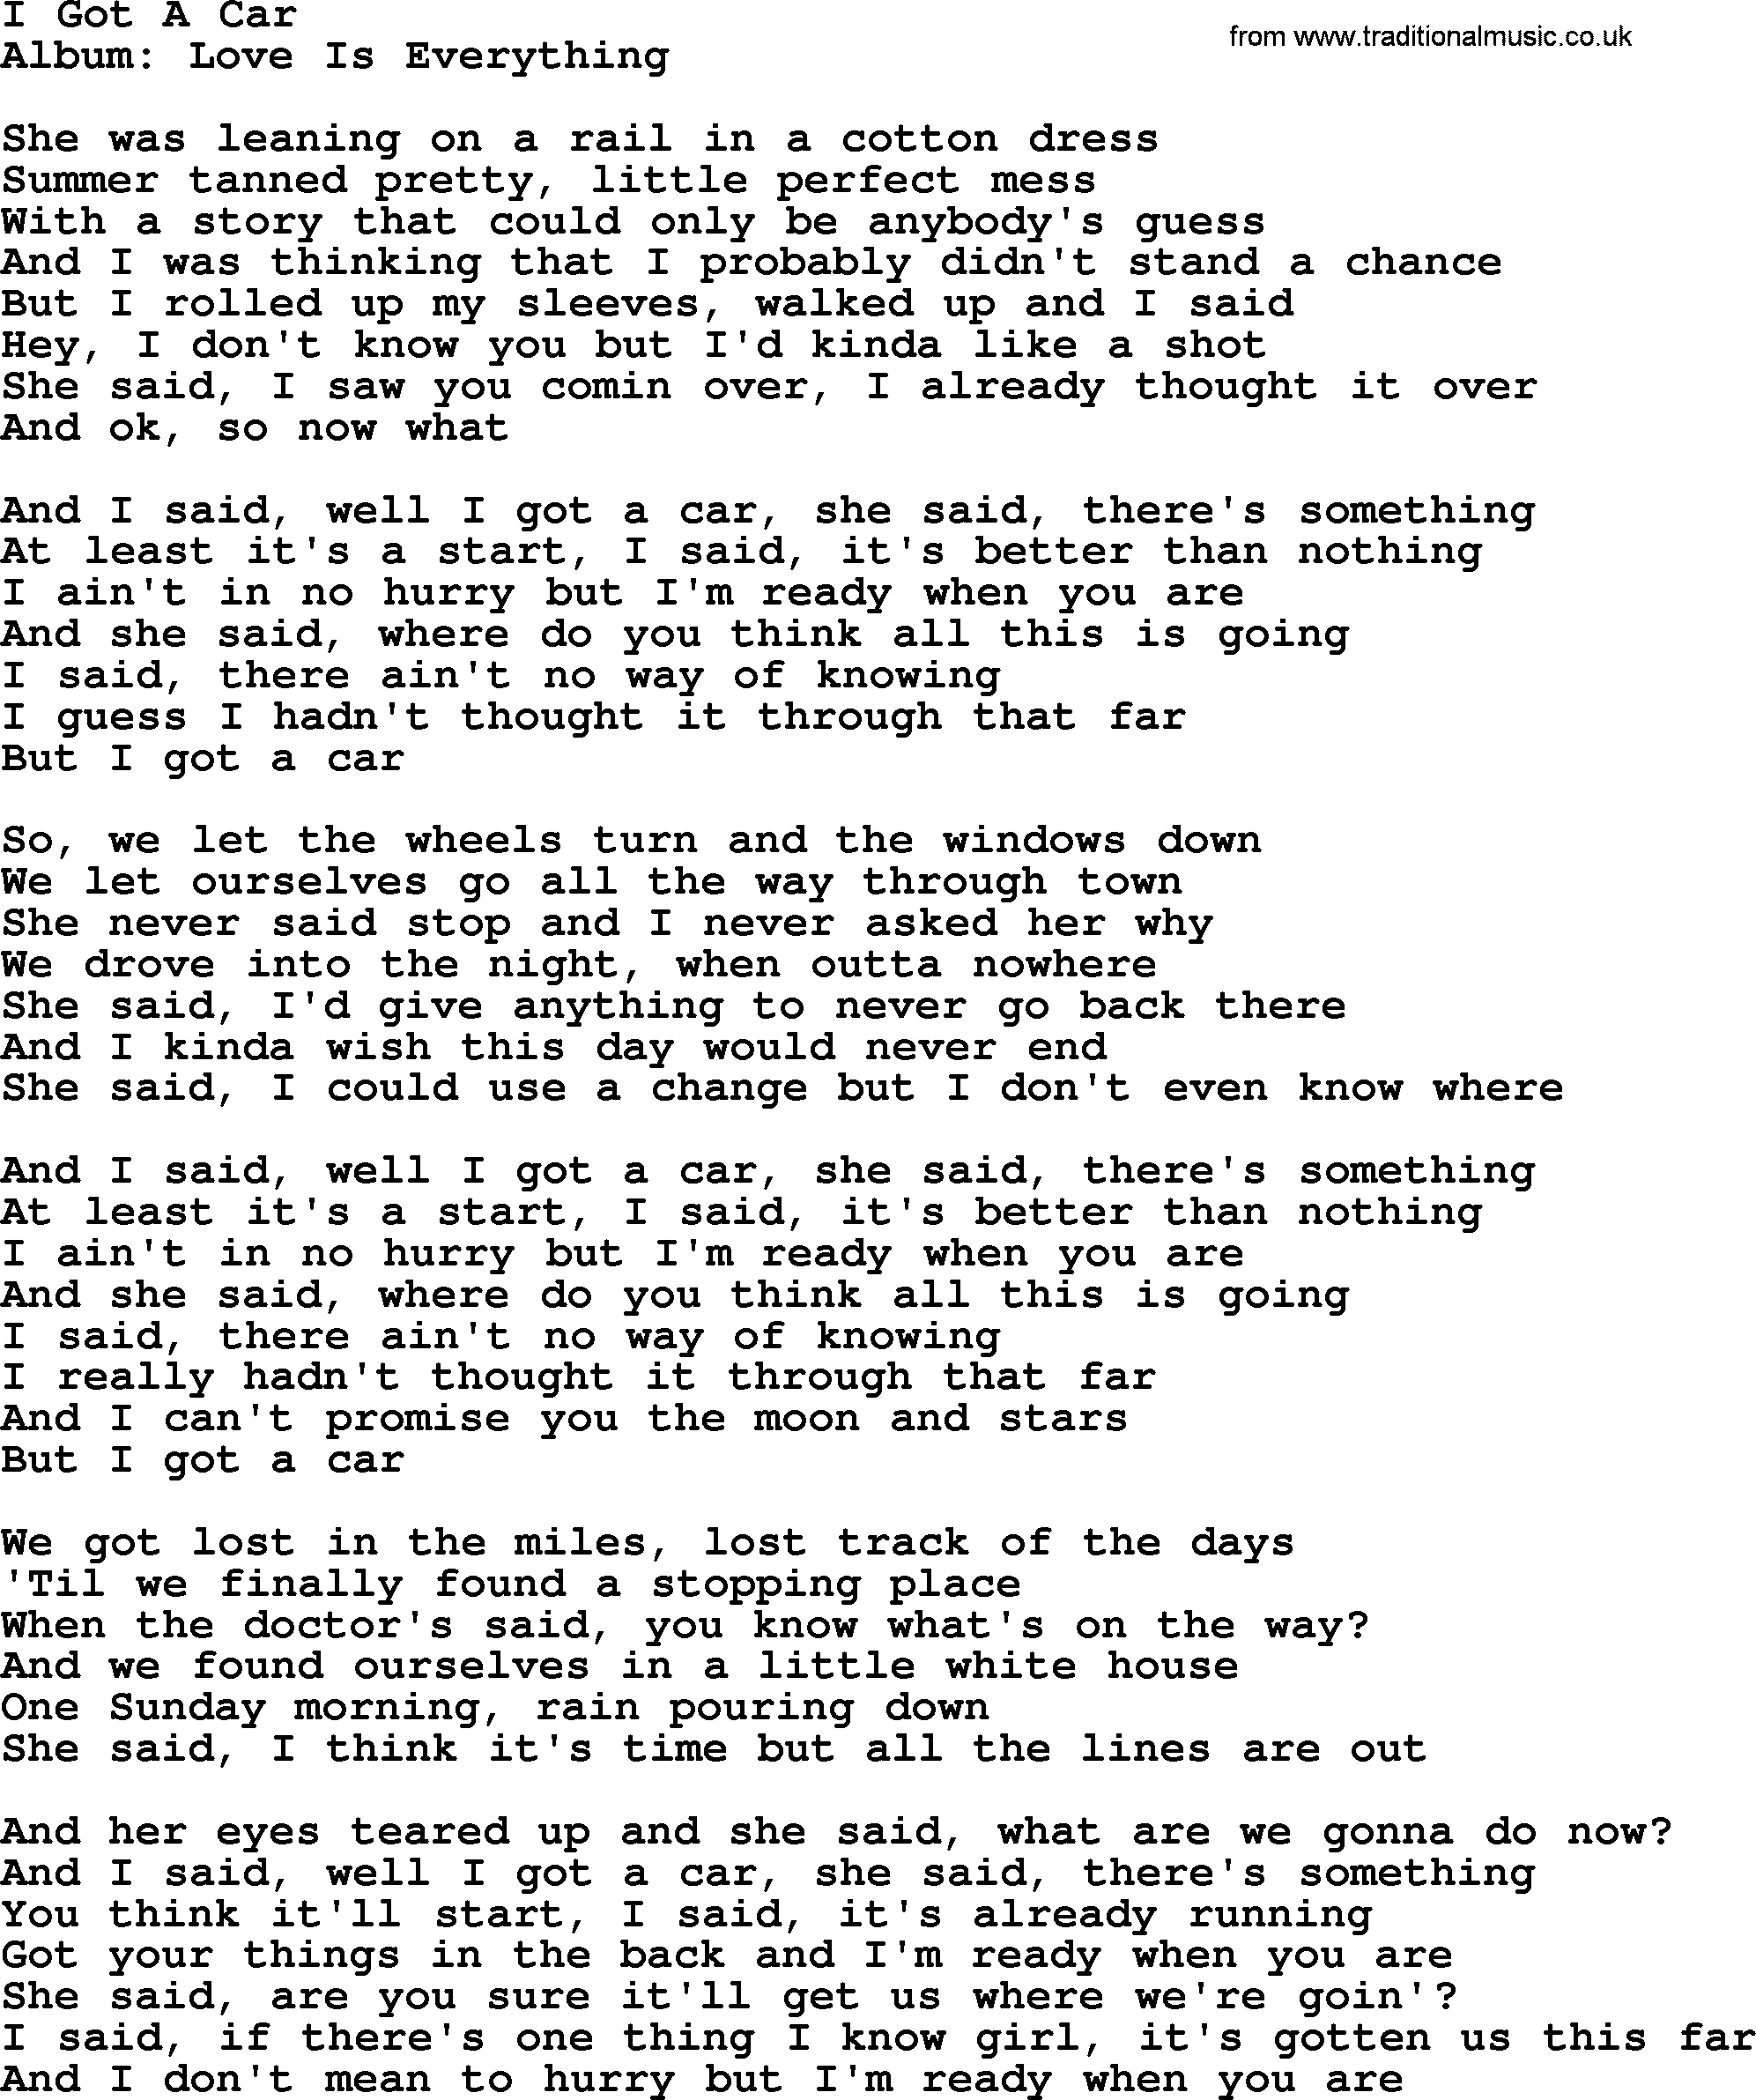 I got a car by george strait lyrics george strait song i got a car lyrics hexwebz Choice Image